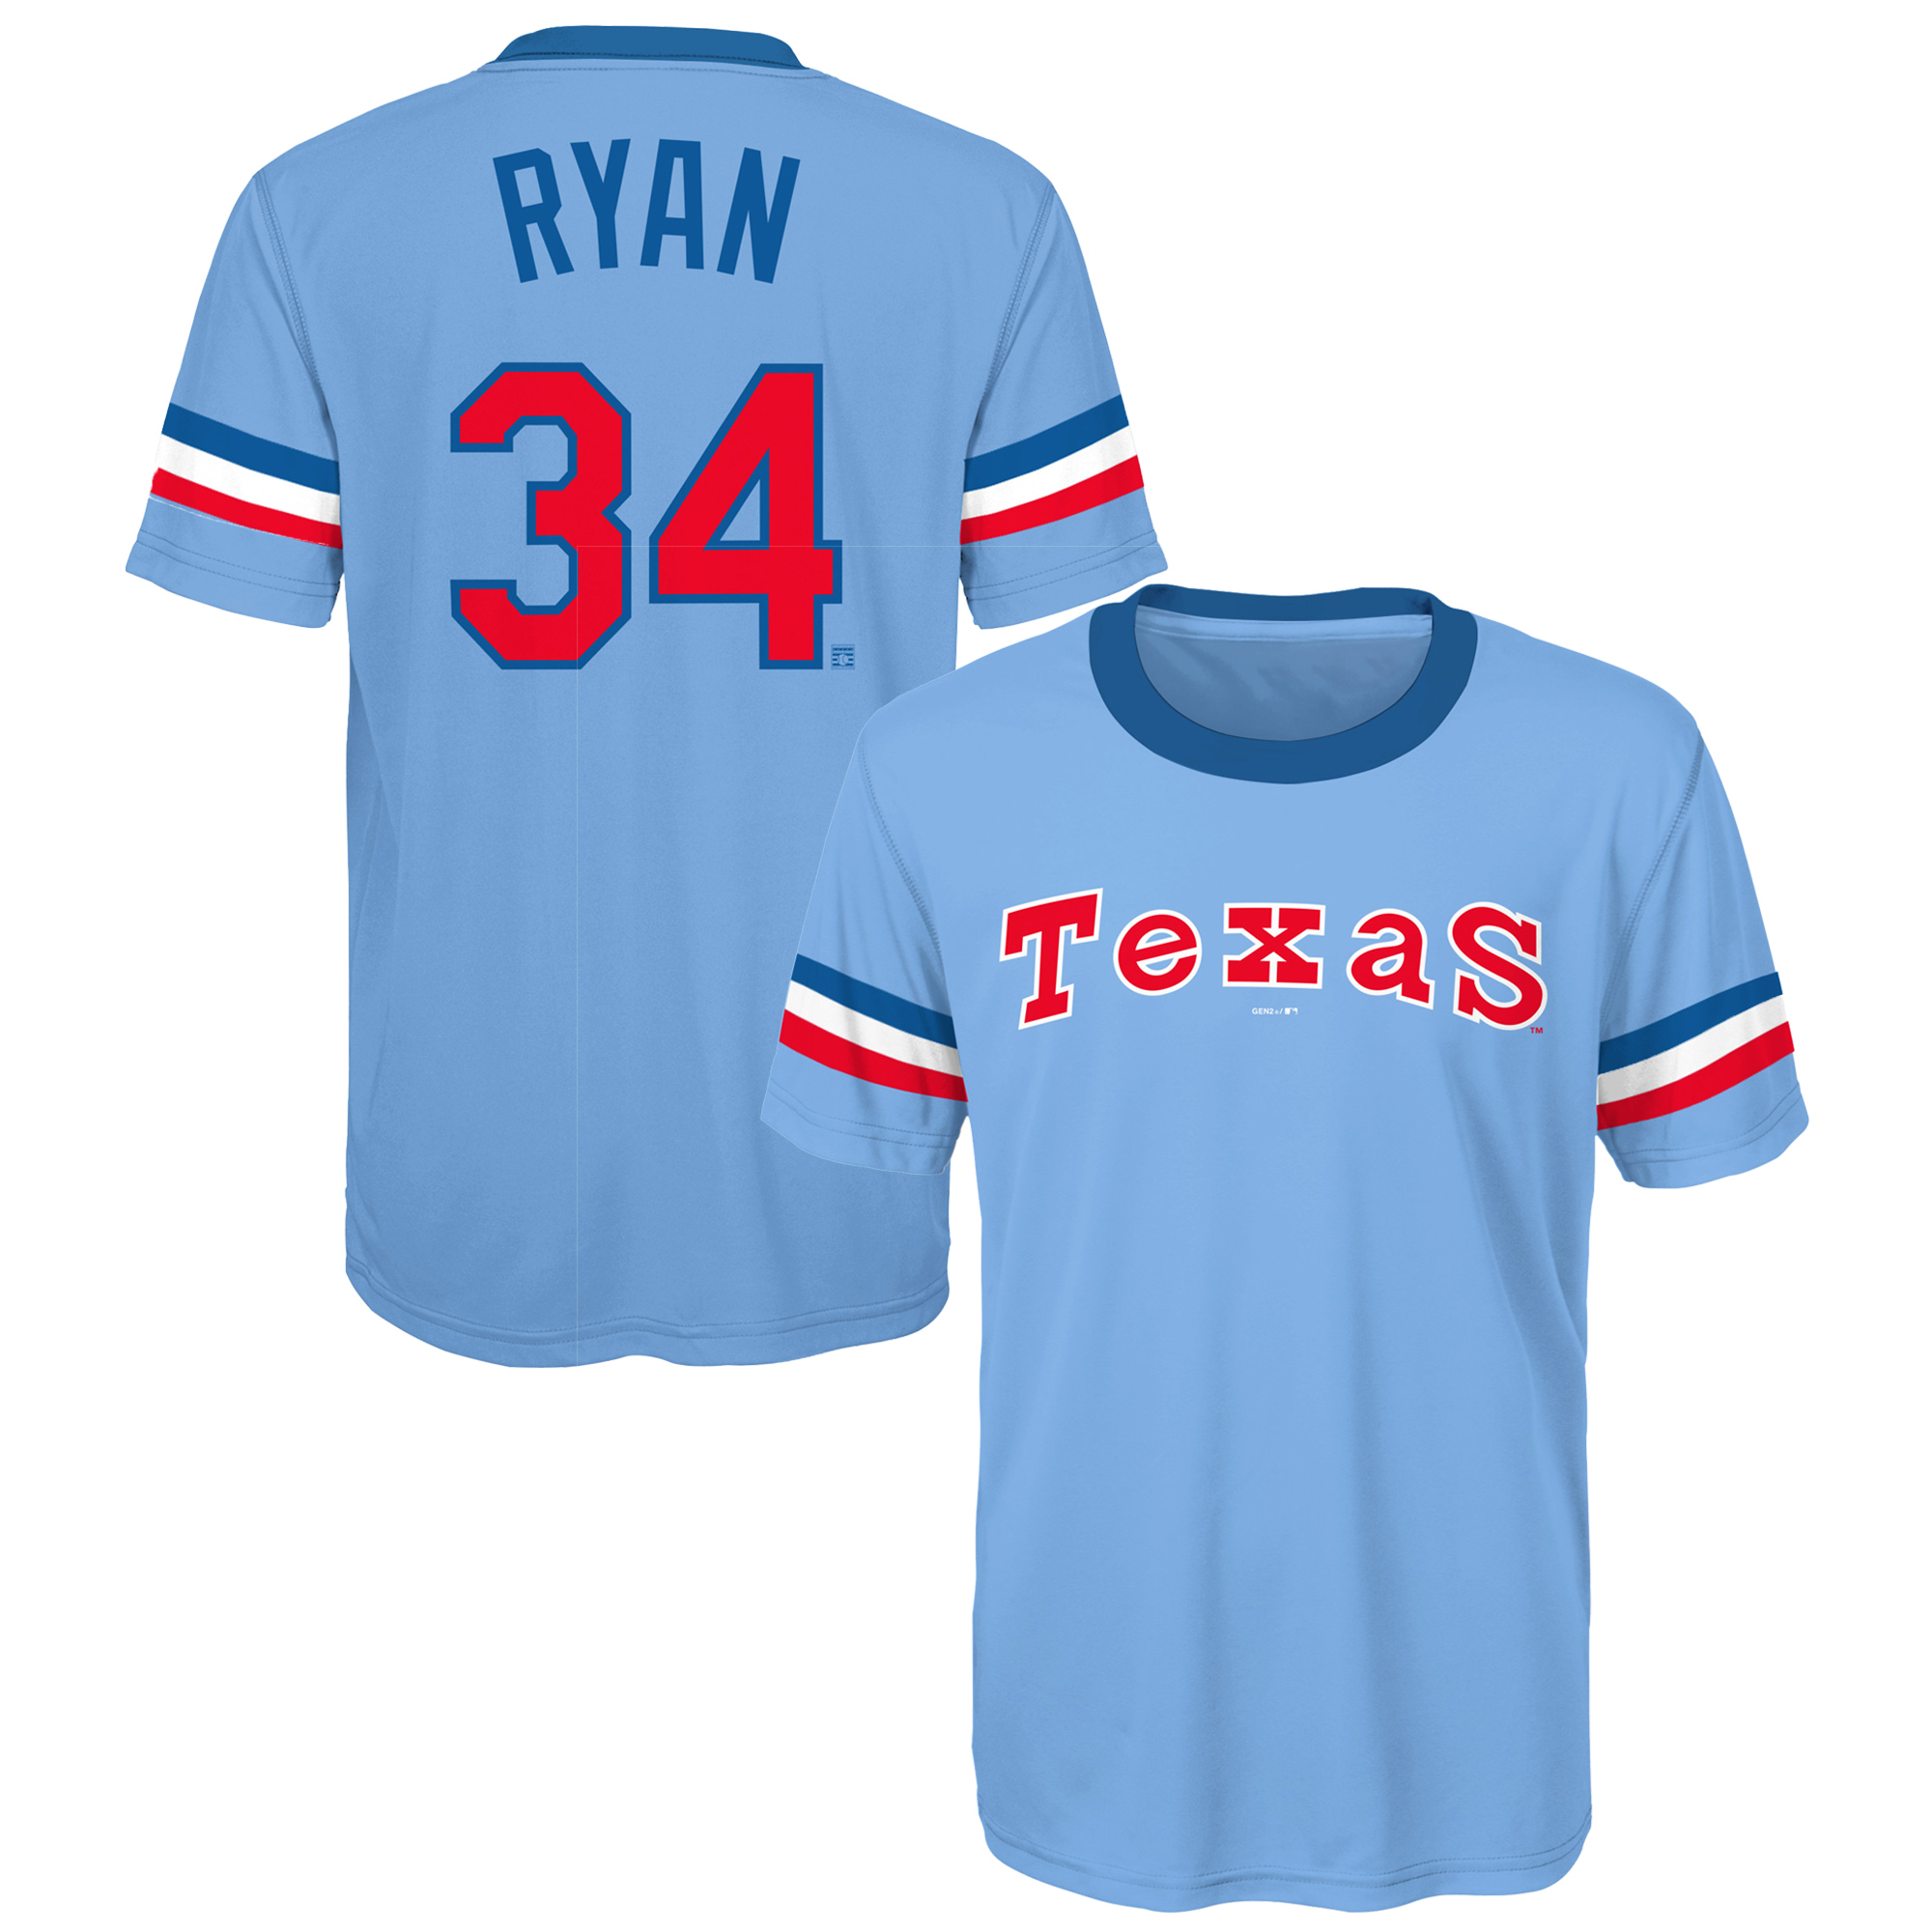 Nolan Ryan Texas Rangers Youth Cooperstown Player Sublimated Jersey Top - Light Blue